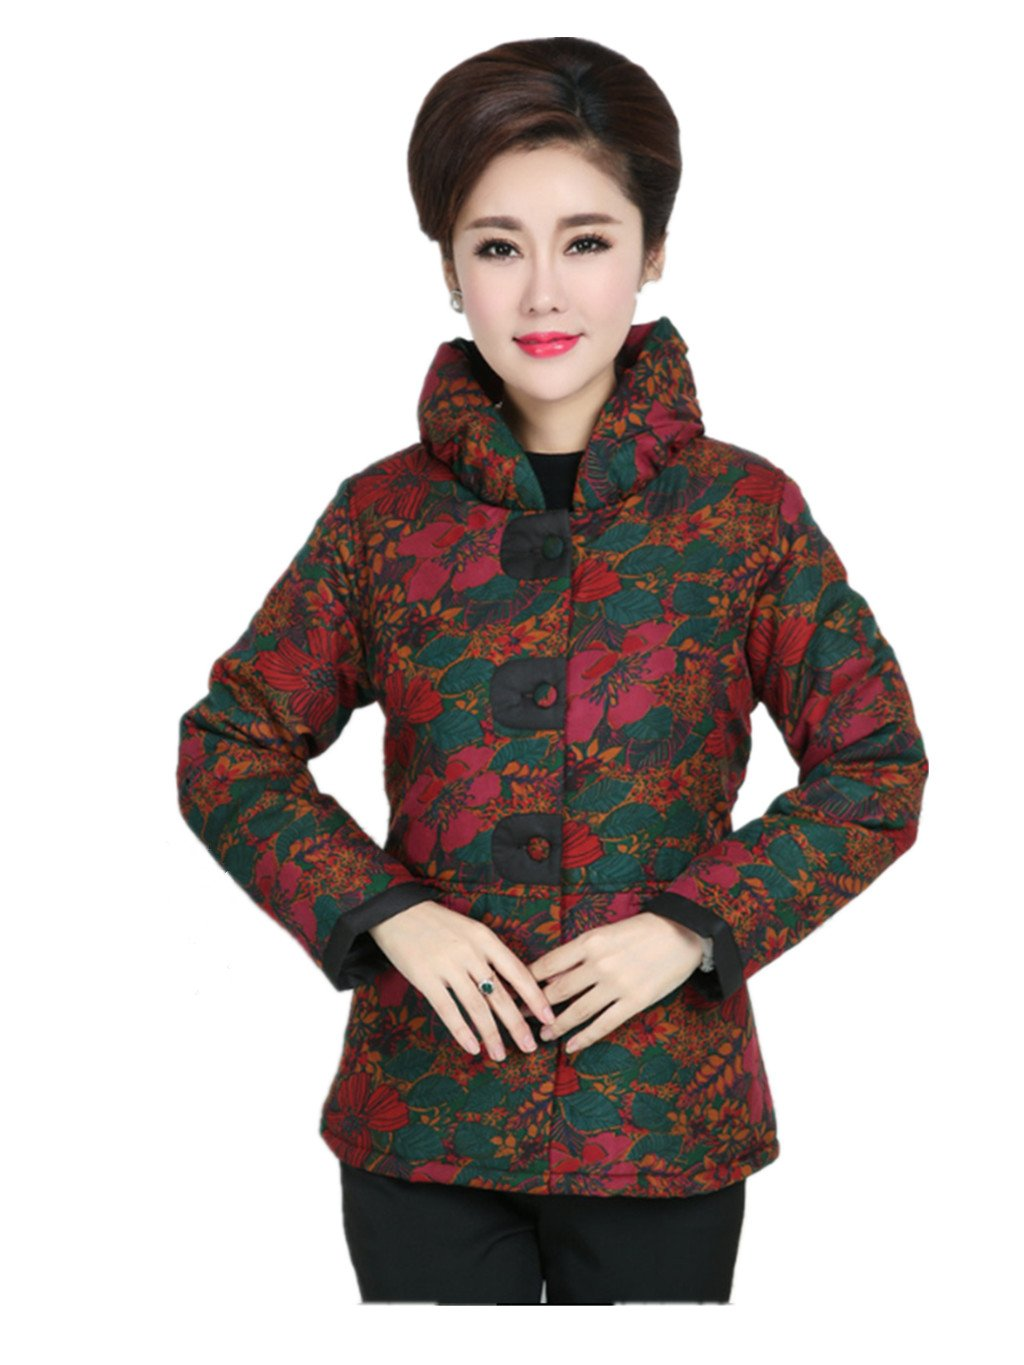 100% Mulberry Silk Womens Tang Suits Cotton-padded Jackets Chinese Coats Womens Jackets